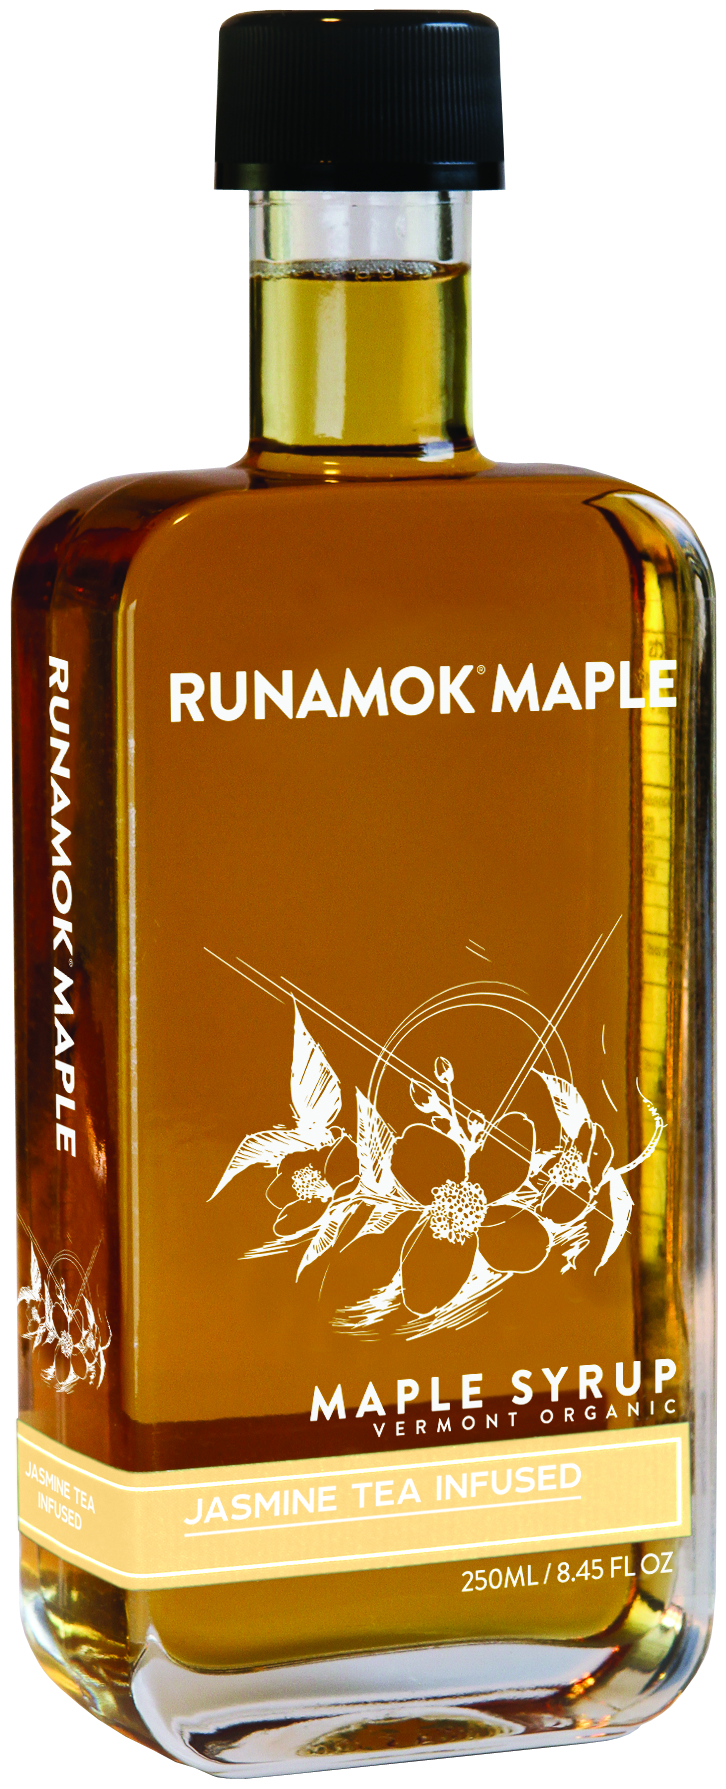 Runamok Maple Releases Jasmine Tea Infused Maple Syrup